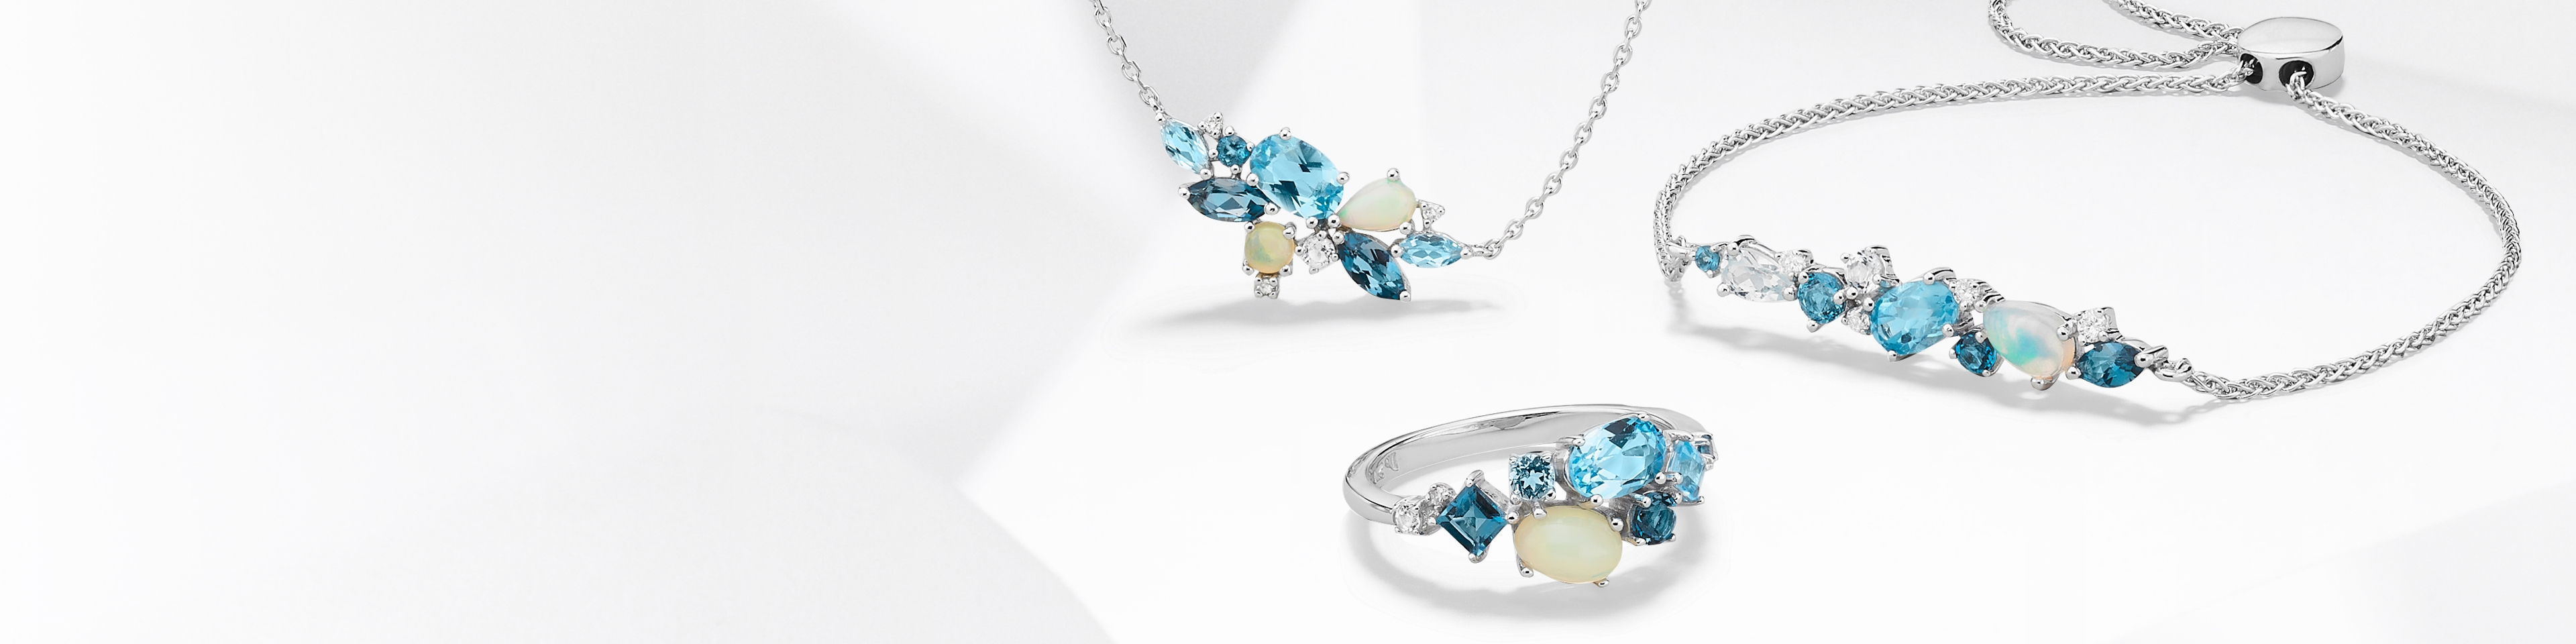 Aquamarine ring and aquamarine bracelet set in white gold. Shop all aquamarine jewelry at Jared.